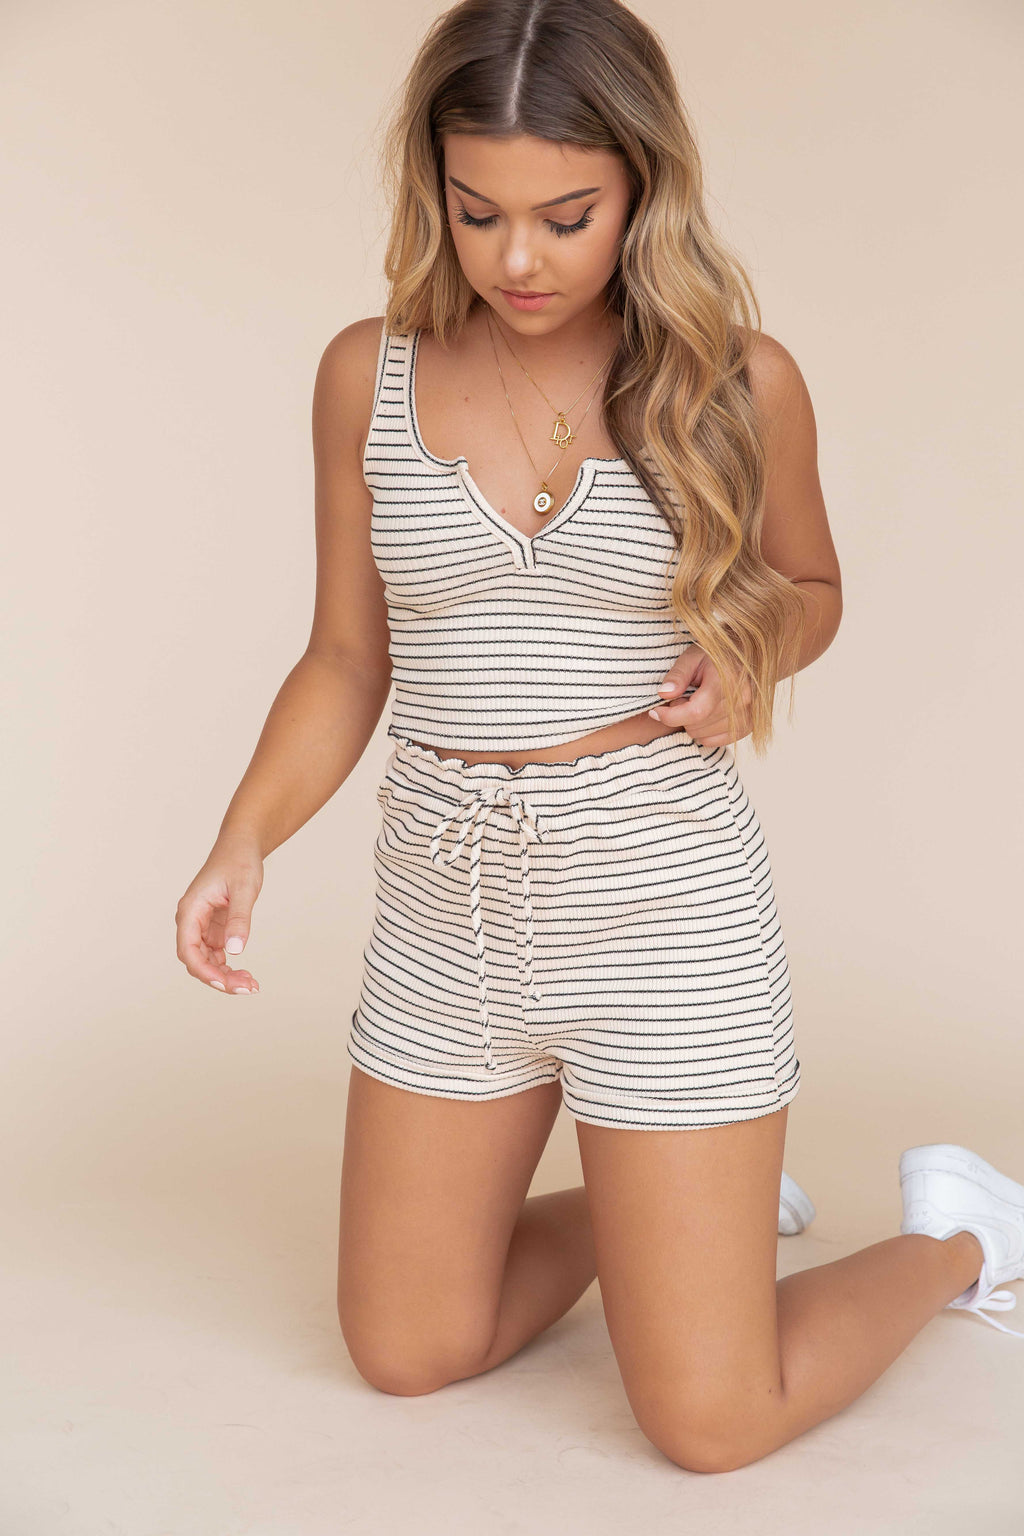 Ribbed Sleeveless Top & Shorts Set- FINAL SALE | LLACIE